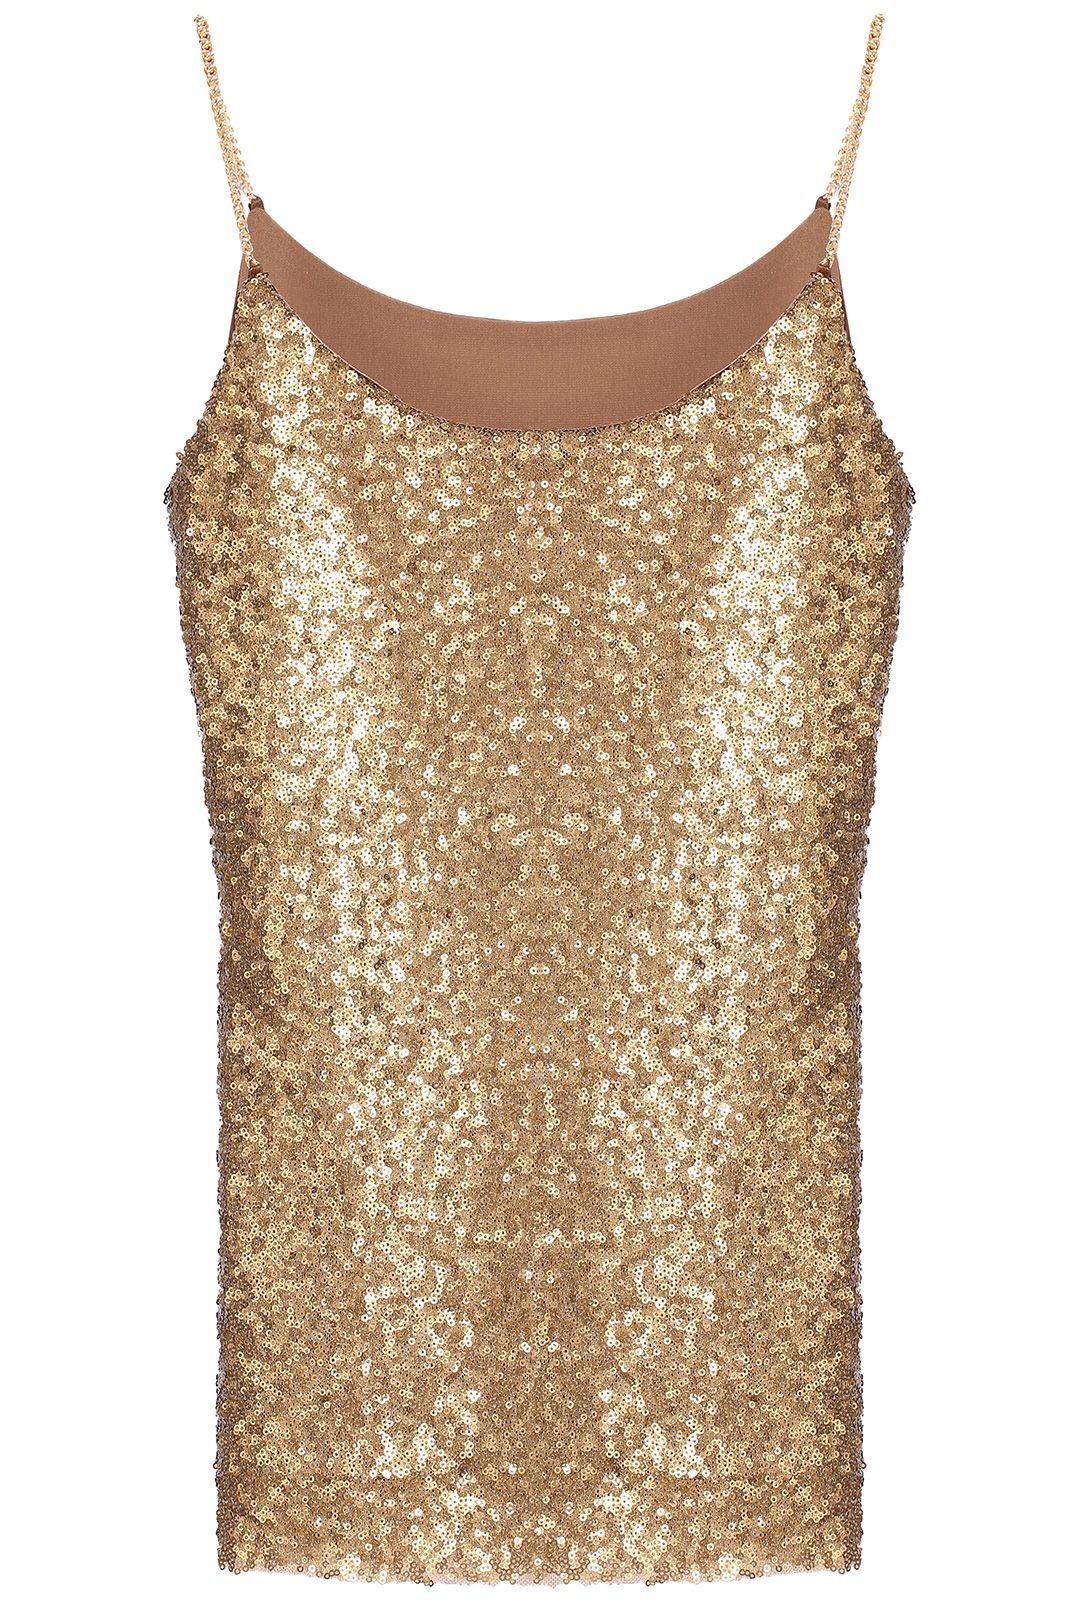 130f7b62049ee Gold Spaghetti Strap Sleeveless Sequined Vest - abaday.com